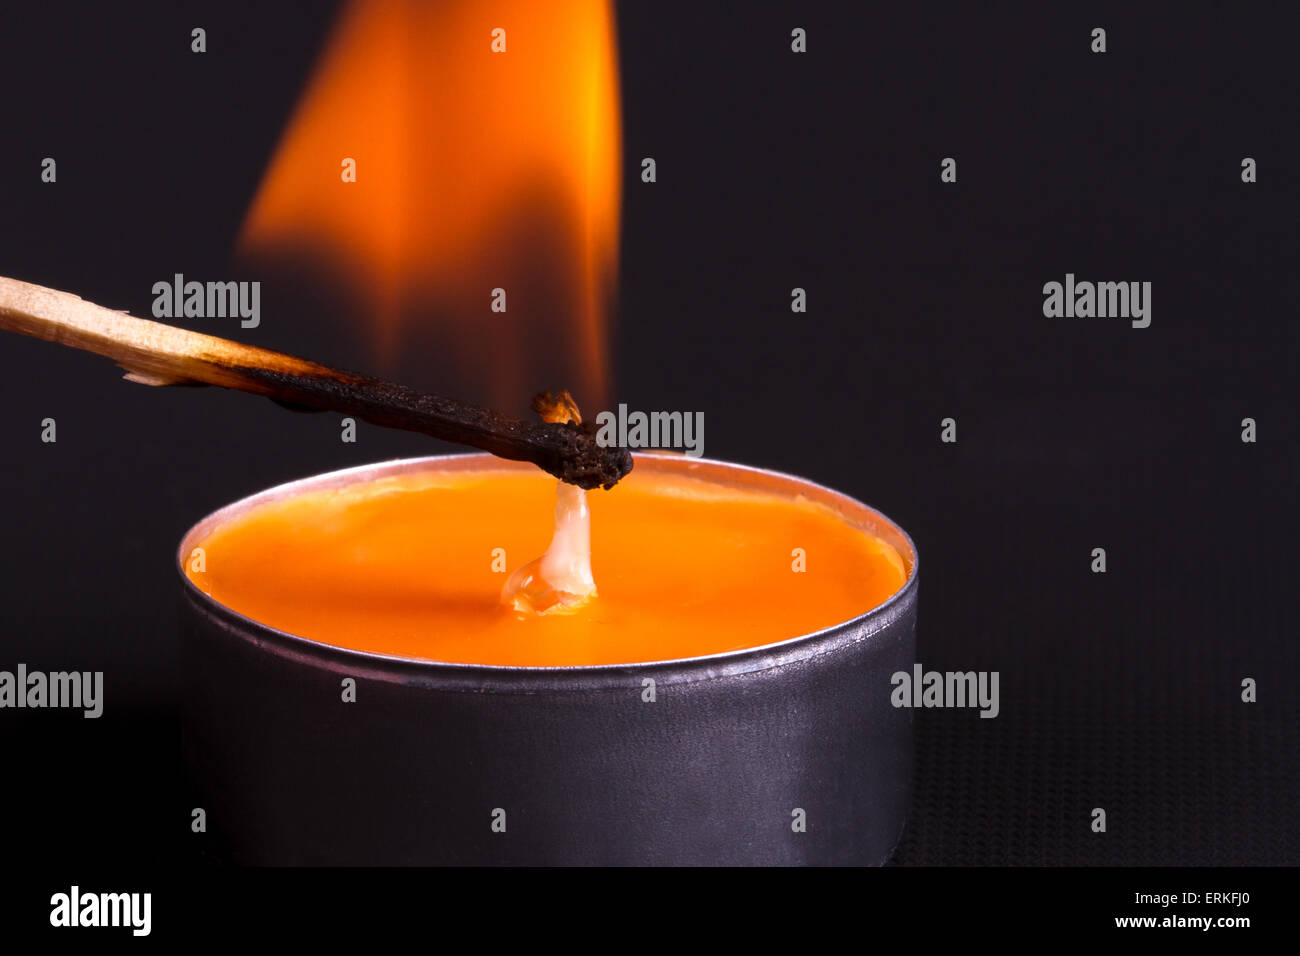 Close up detailed front view of orange candle, burning with a match, on black background. - Stock Image